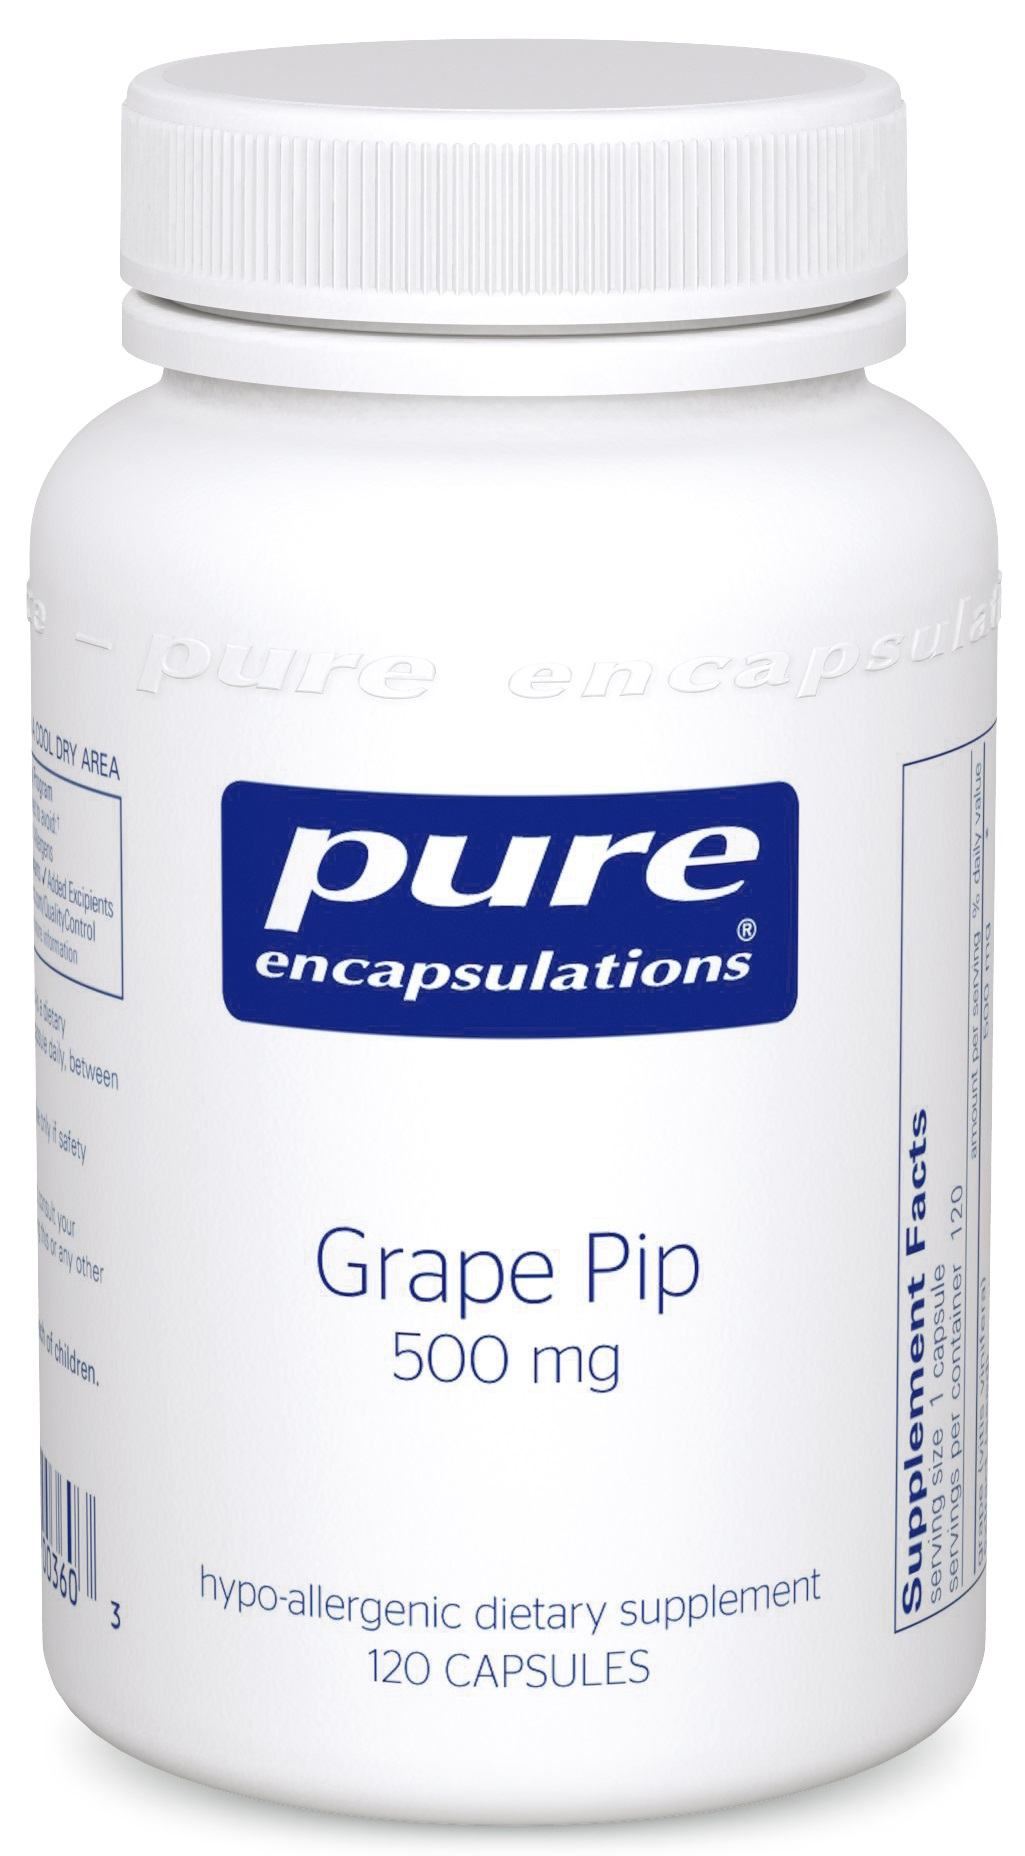 Pure Encapsulations Grape Pip 500 mg